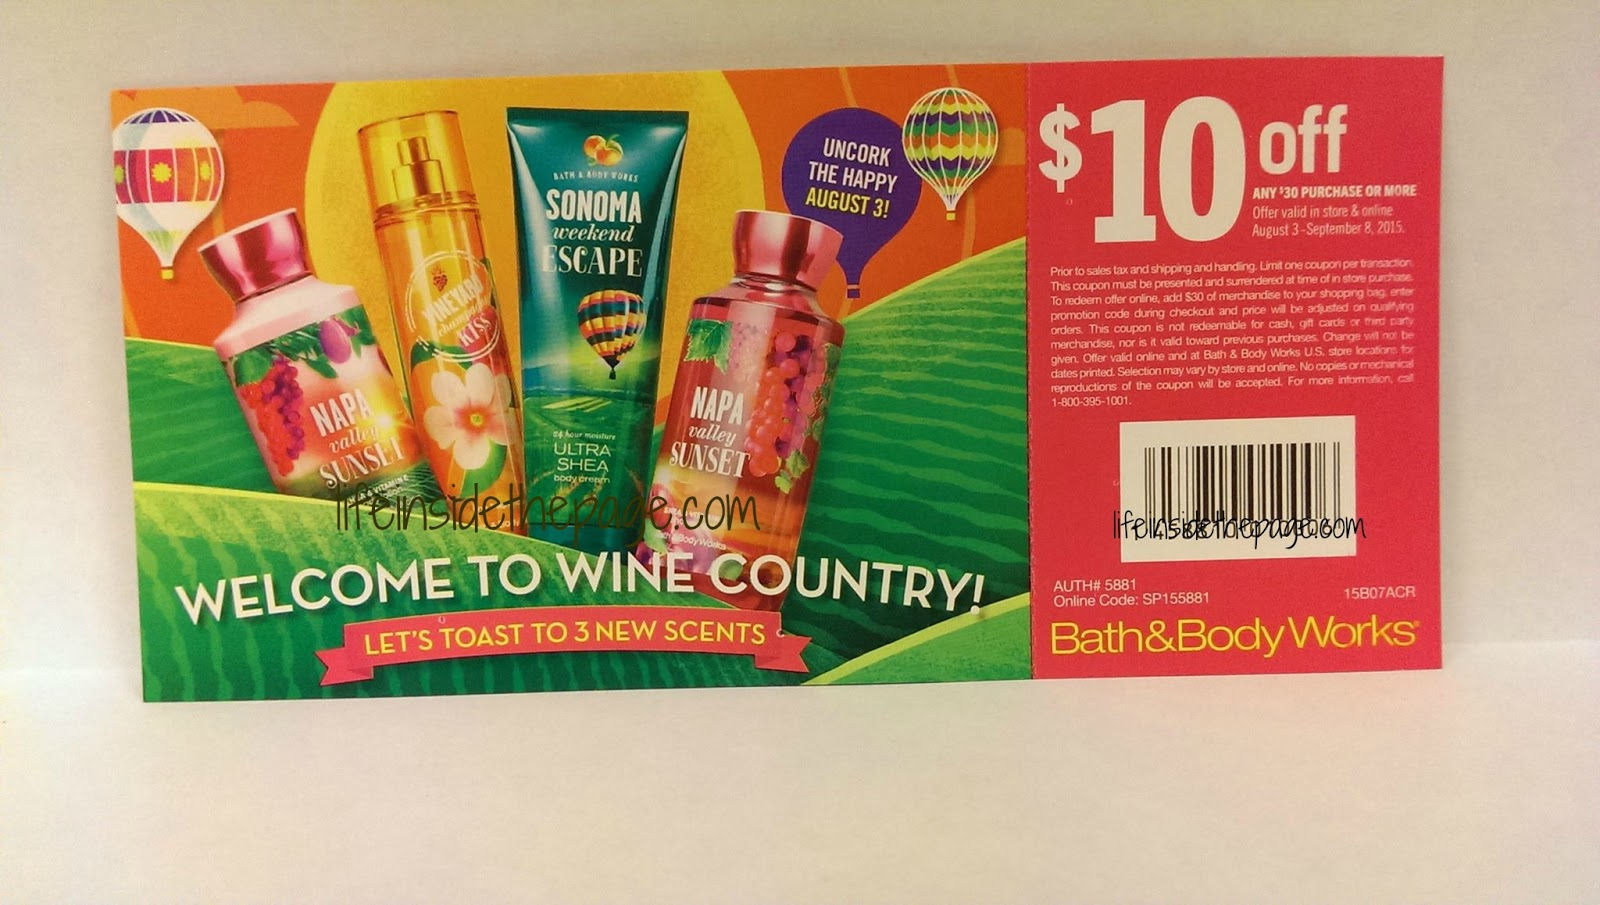 Bath and body works coupons 2018 may